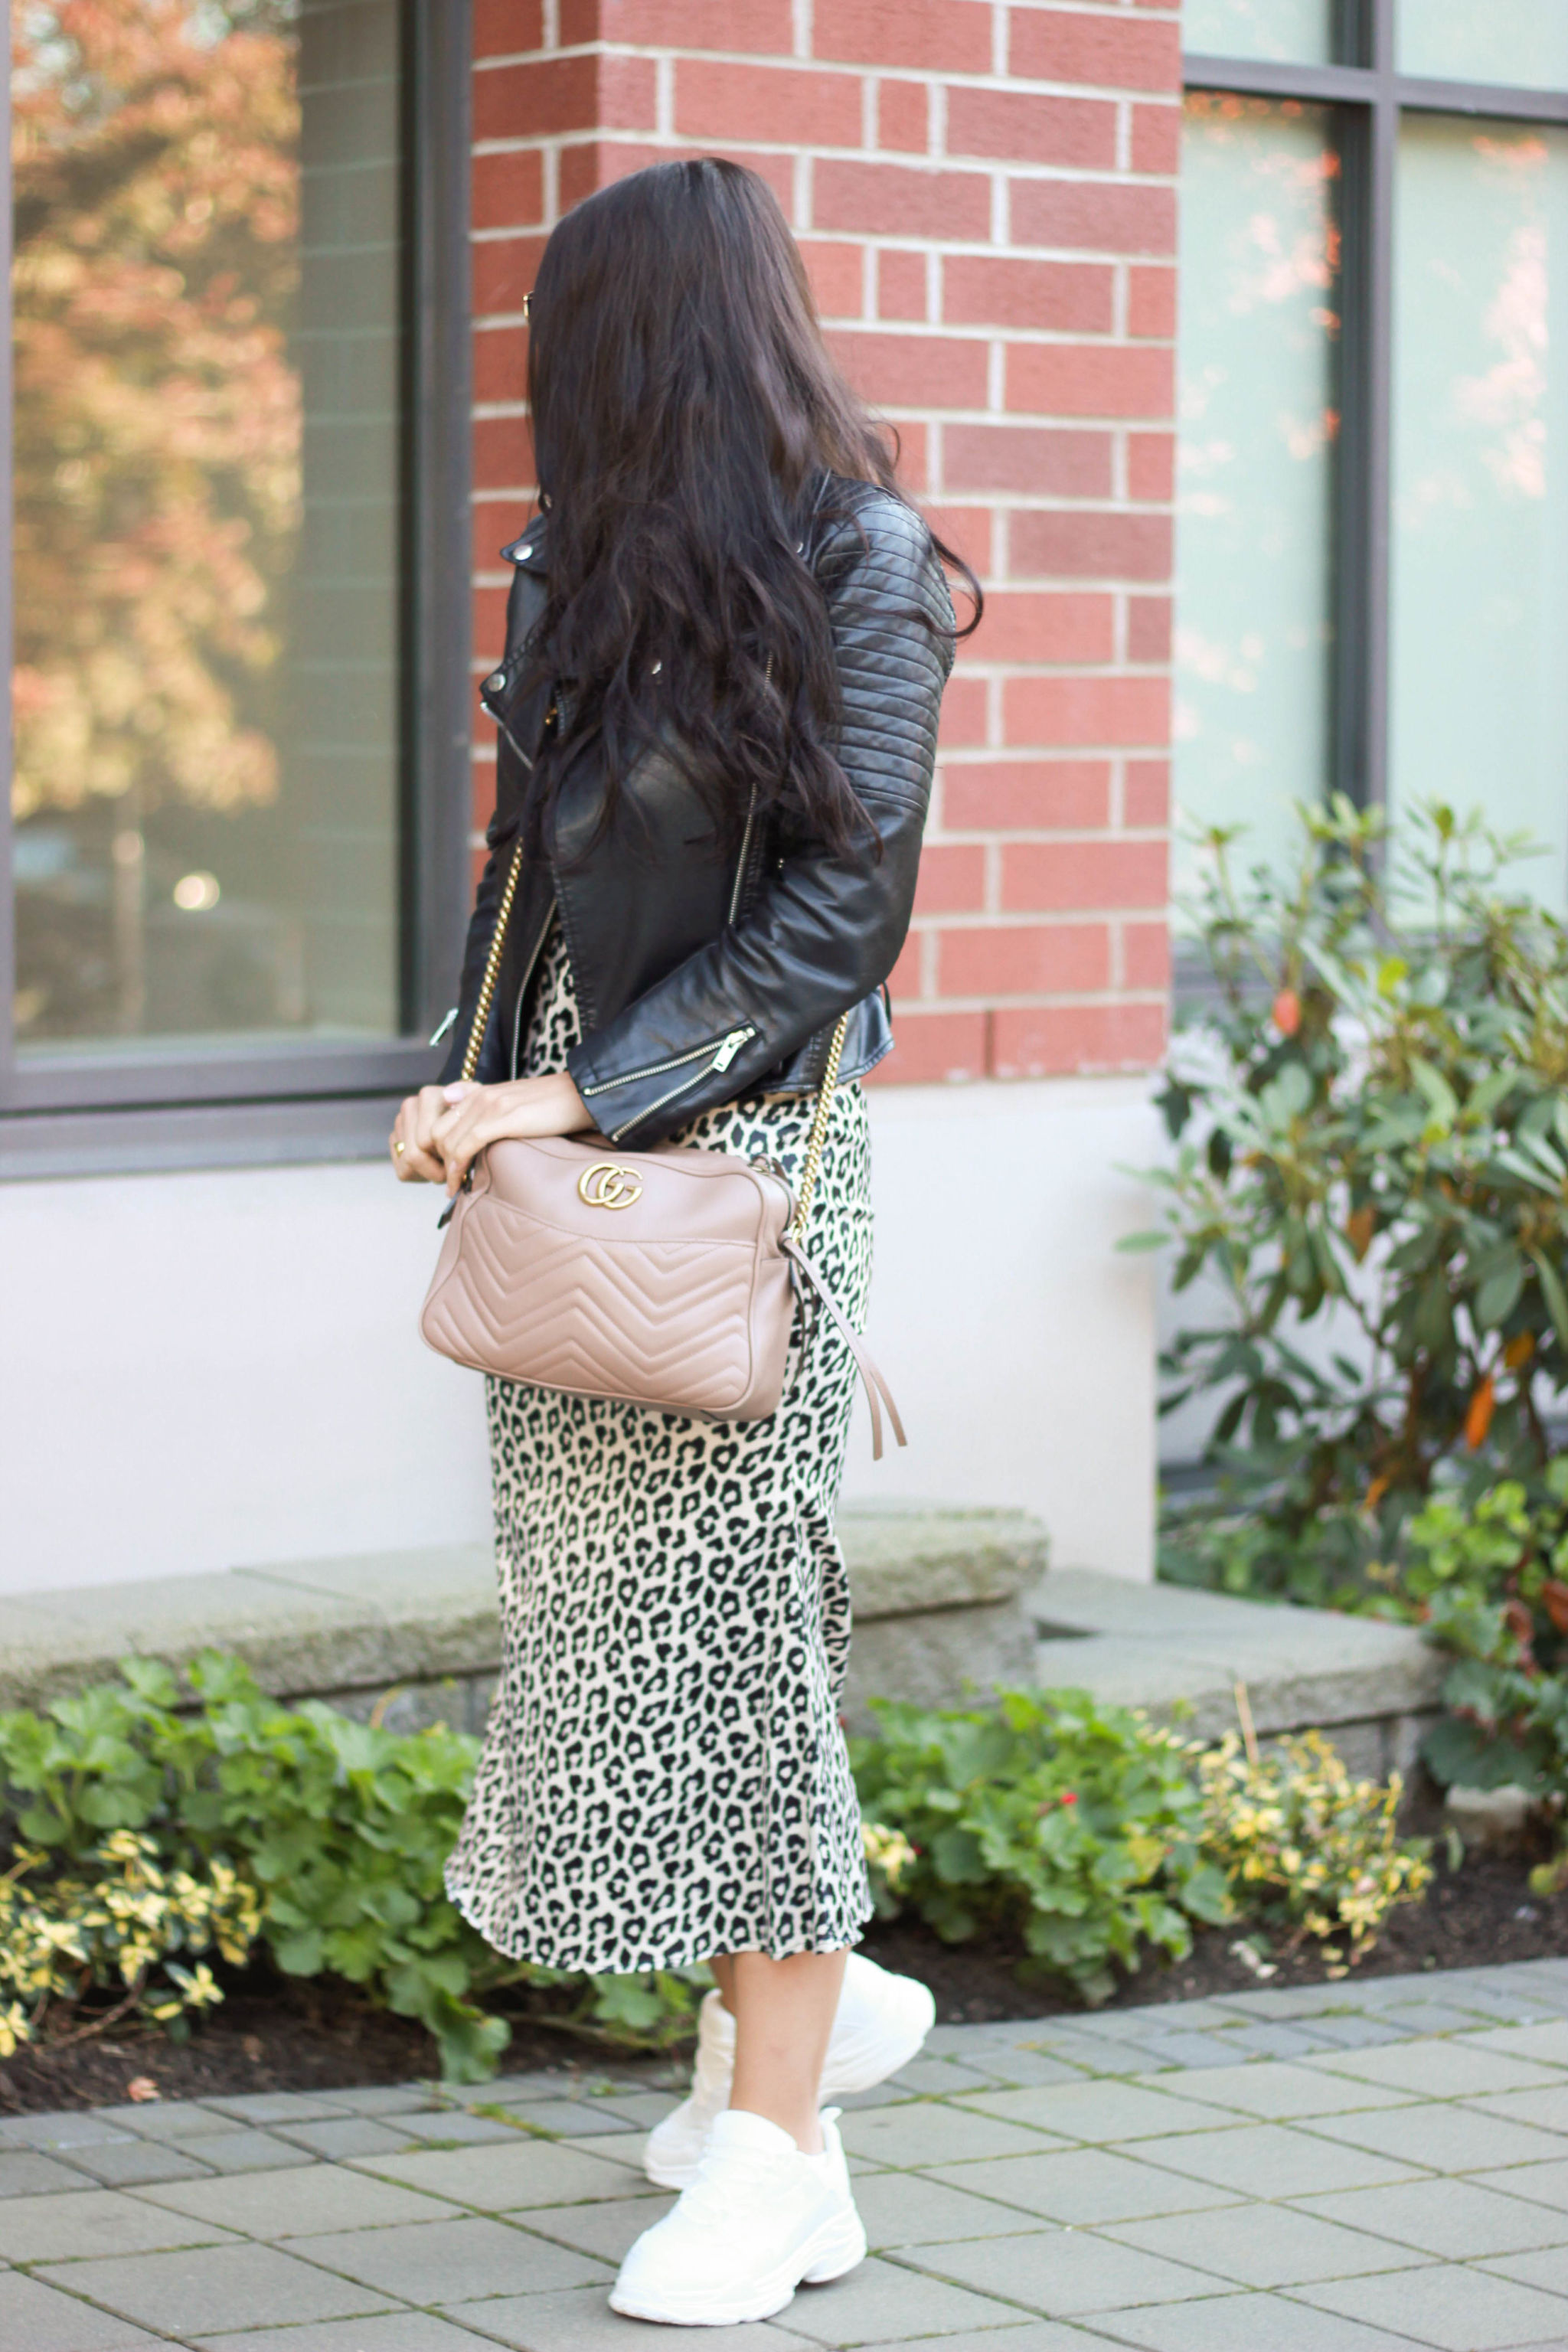 319396f6b4c83 How to Style Leopard Print and Dad Sneakers this Fall - KRYSTIN TYSIRE